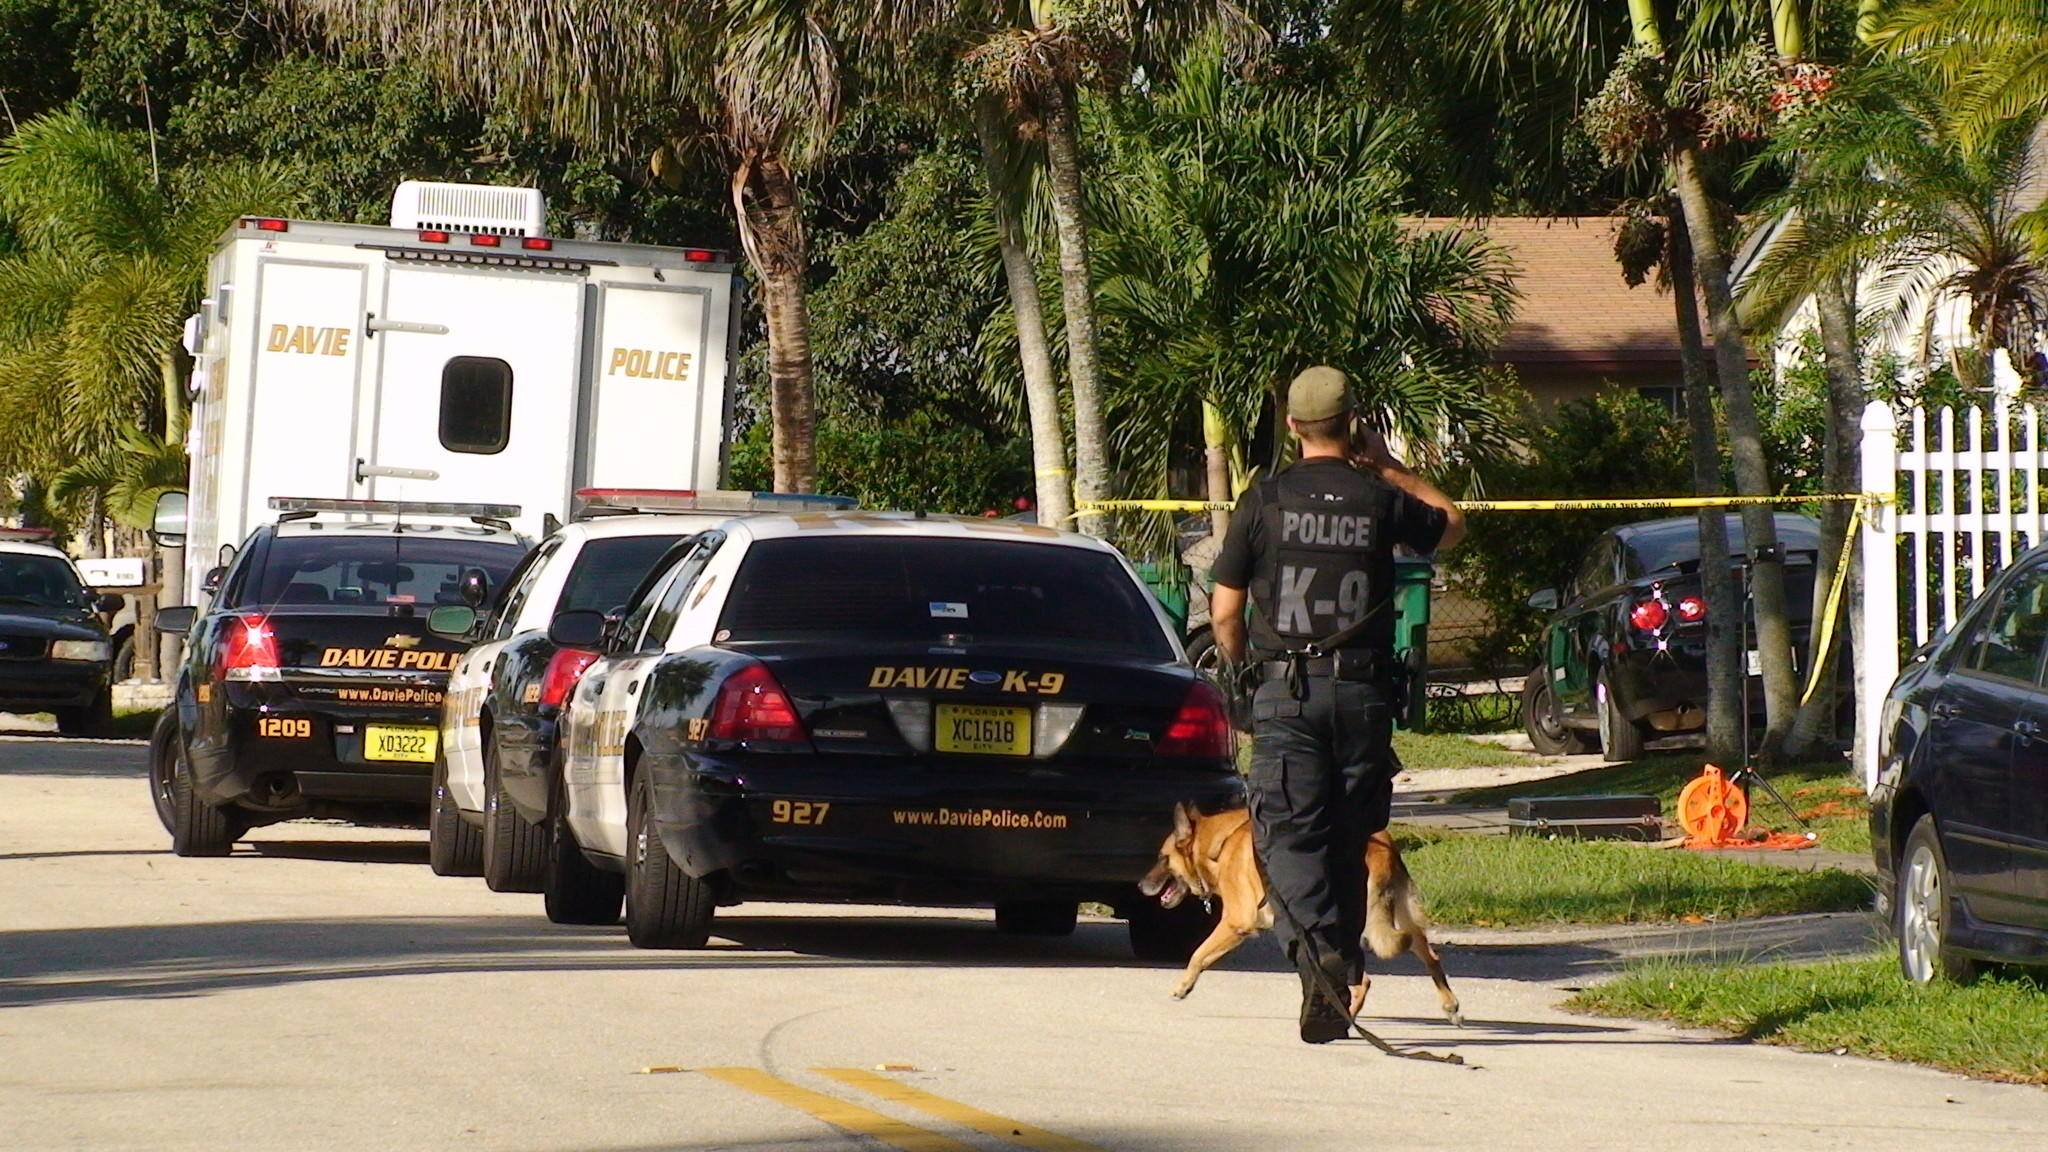 Davie Police found an AK-47 assault rifle believed to be the weapon the victim used to kill a home invasion robbery suspect